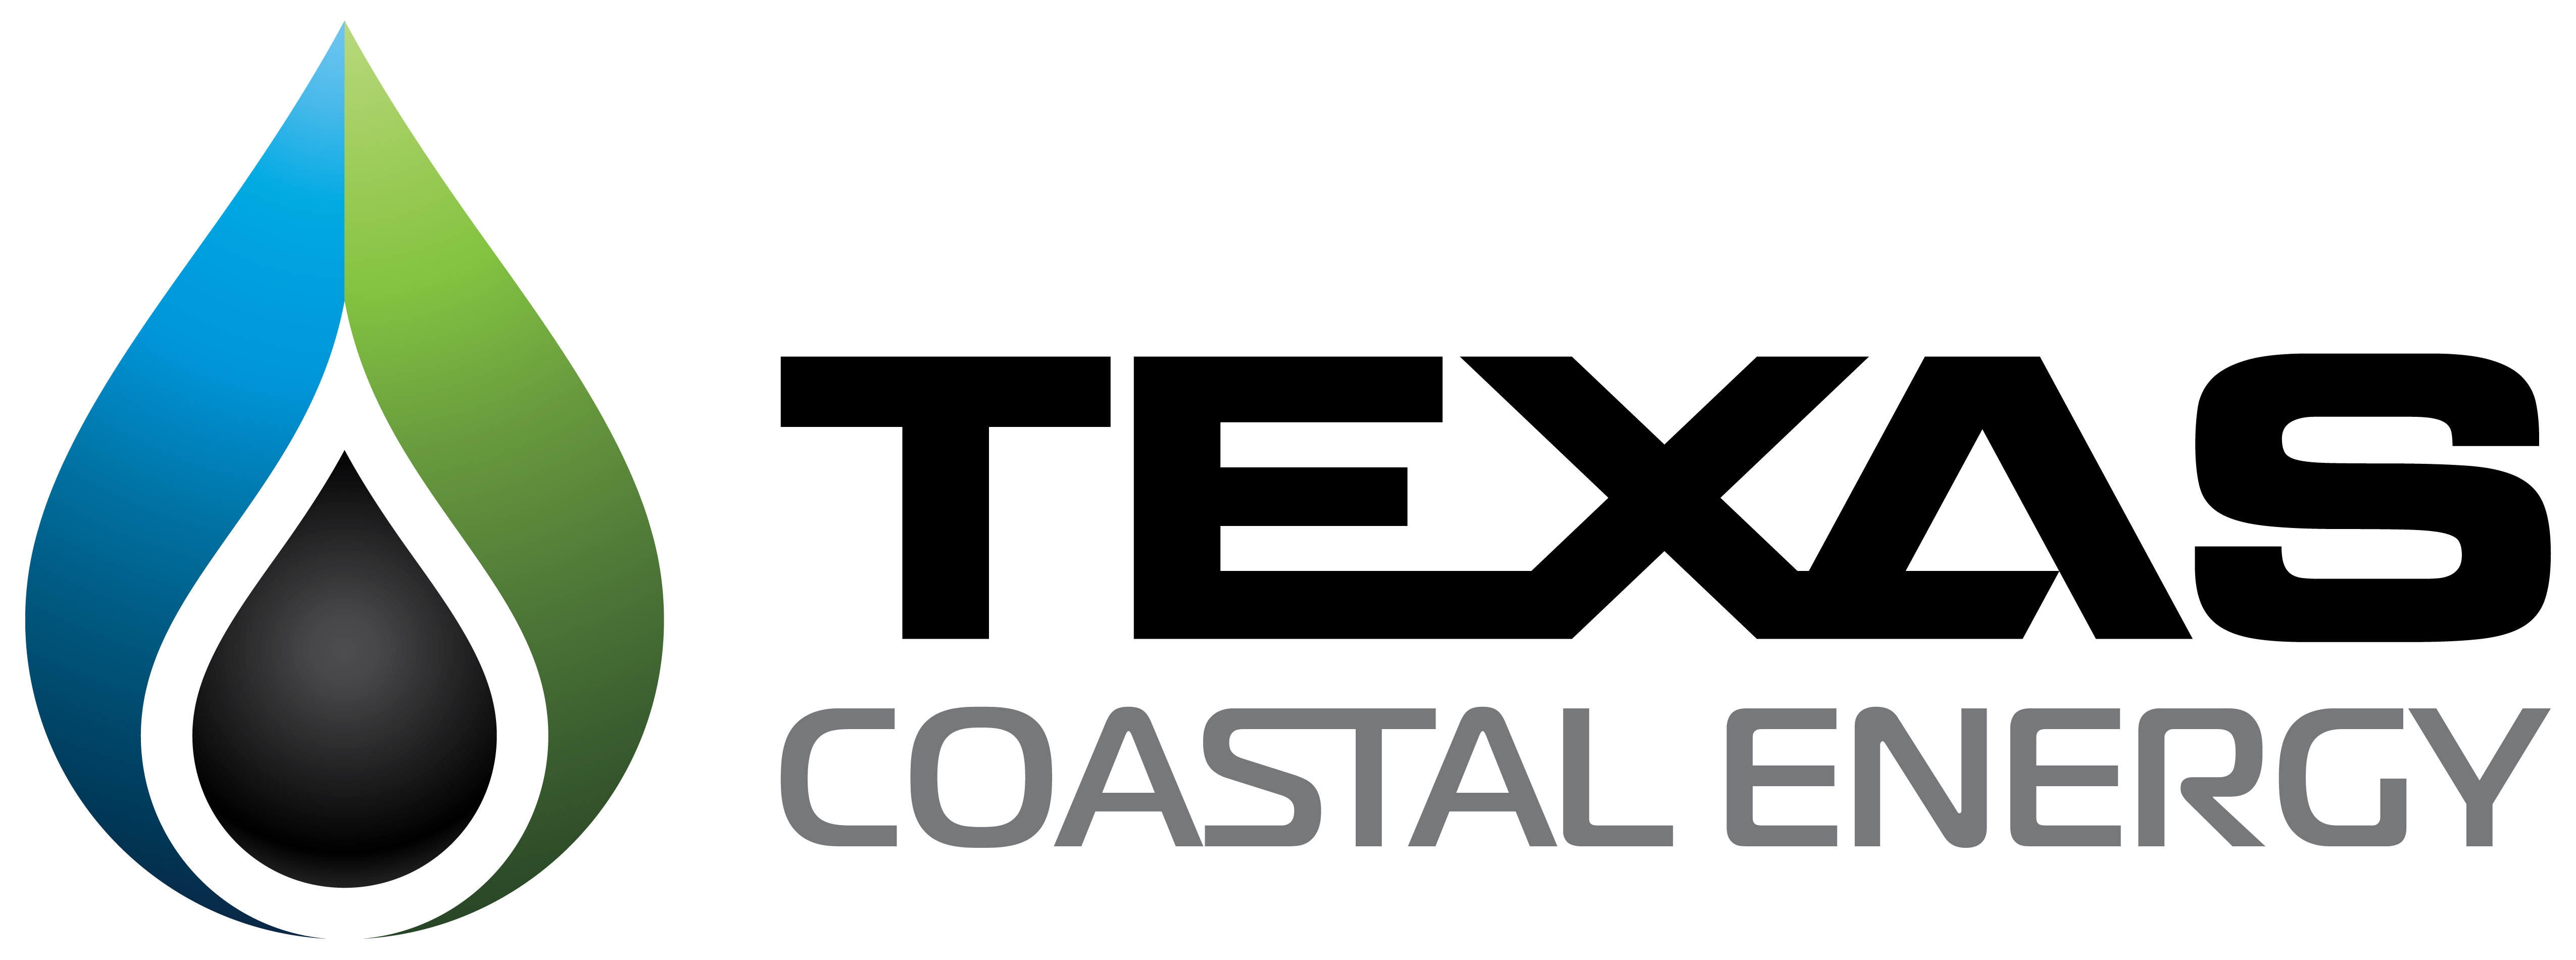 Texas Coastal Energy Company Opens New York Office. Hotel And Restaurant Management Online Degree. Northern Virginia Family Practice. Cache County School District. Wisconsin Criminal Attorney Pc Activity Log. Audi Automobile Company Solar Energy In Homes. Schoolsfirst Online Banking Move 401k To Ira. Film Production Process Direct Life Insurance. Austin Auto Salvage Yards Best Banks In Tampa